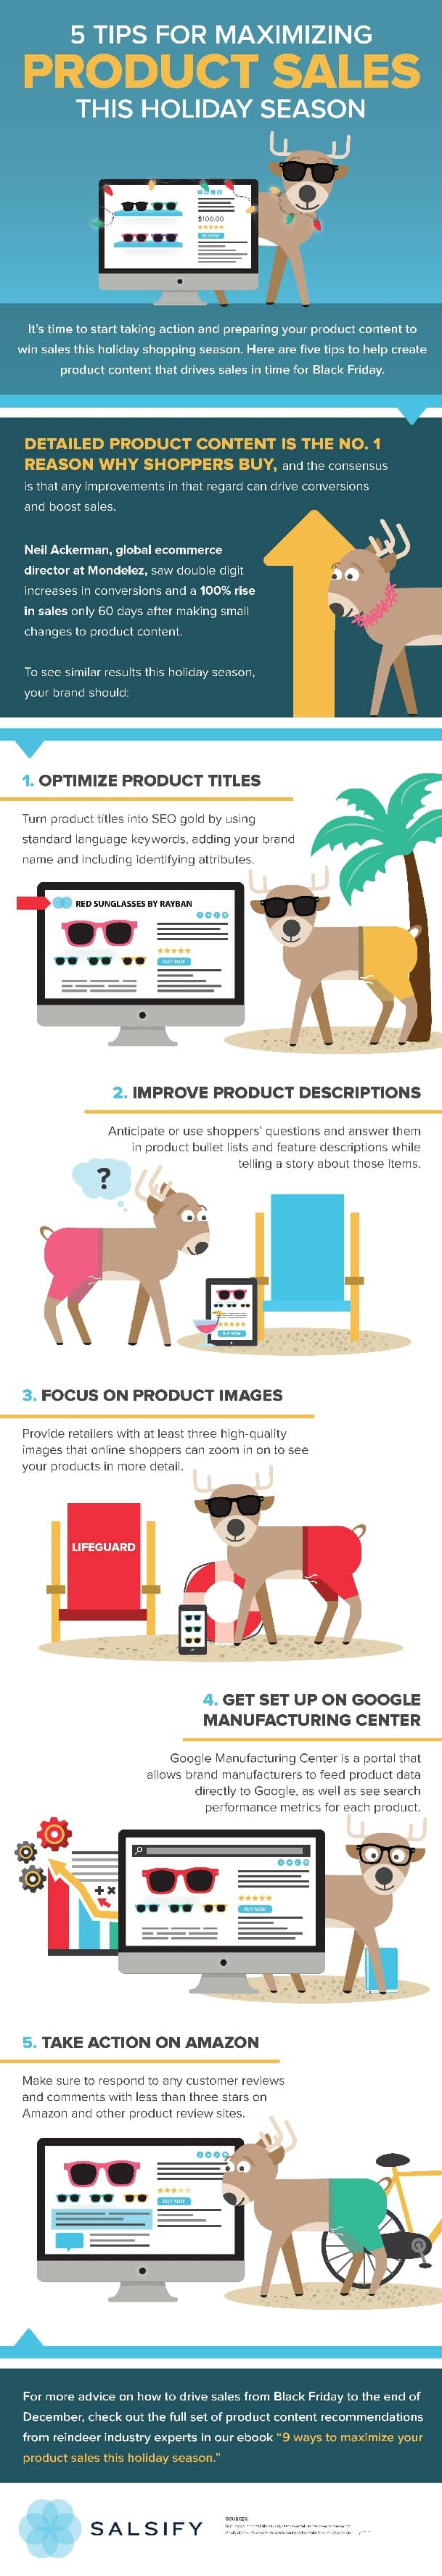 5 Tips To Maximize Your Product Sales This Holiday Season